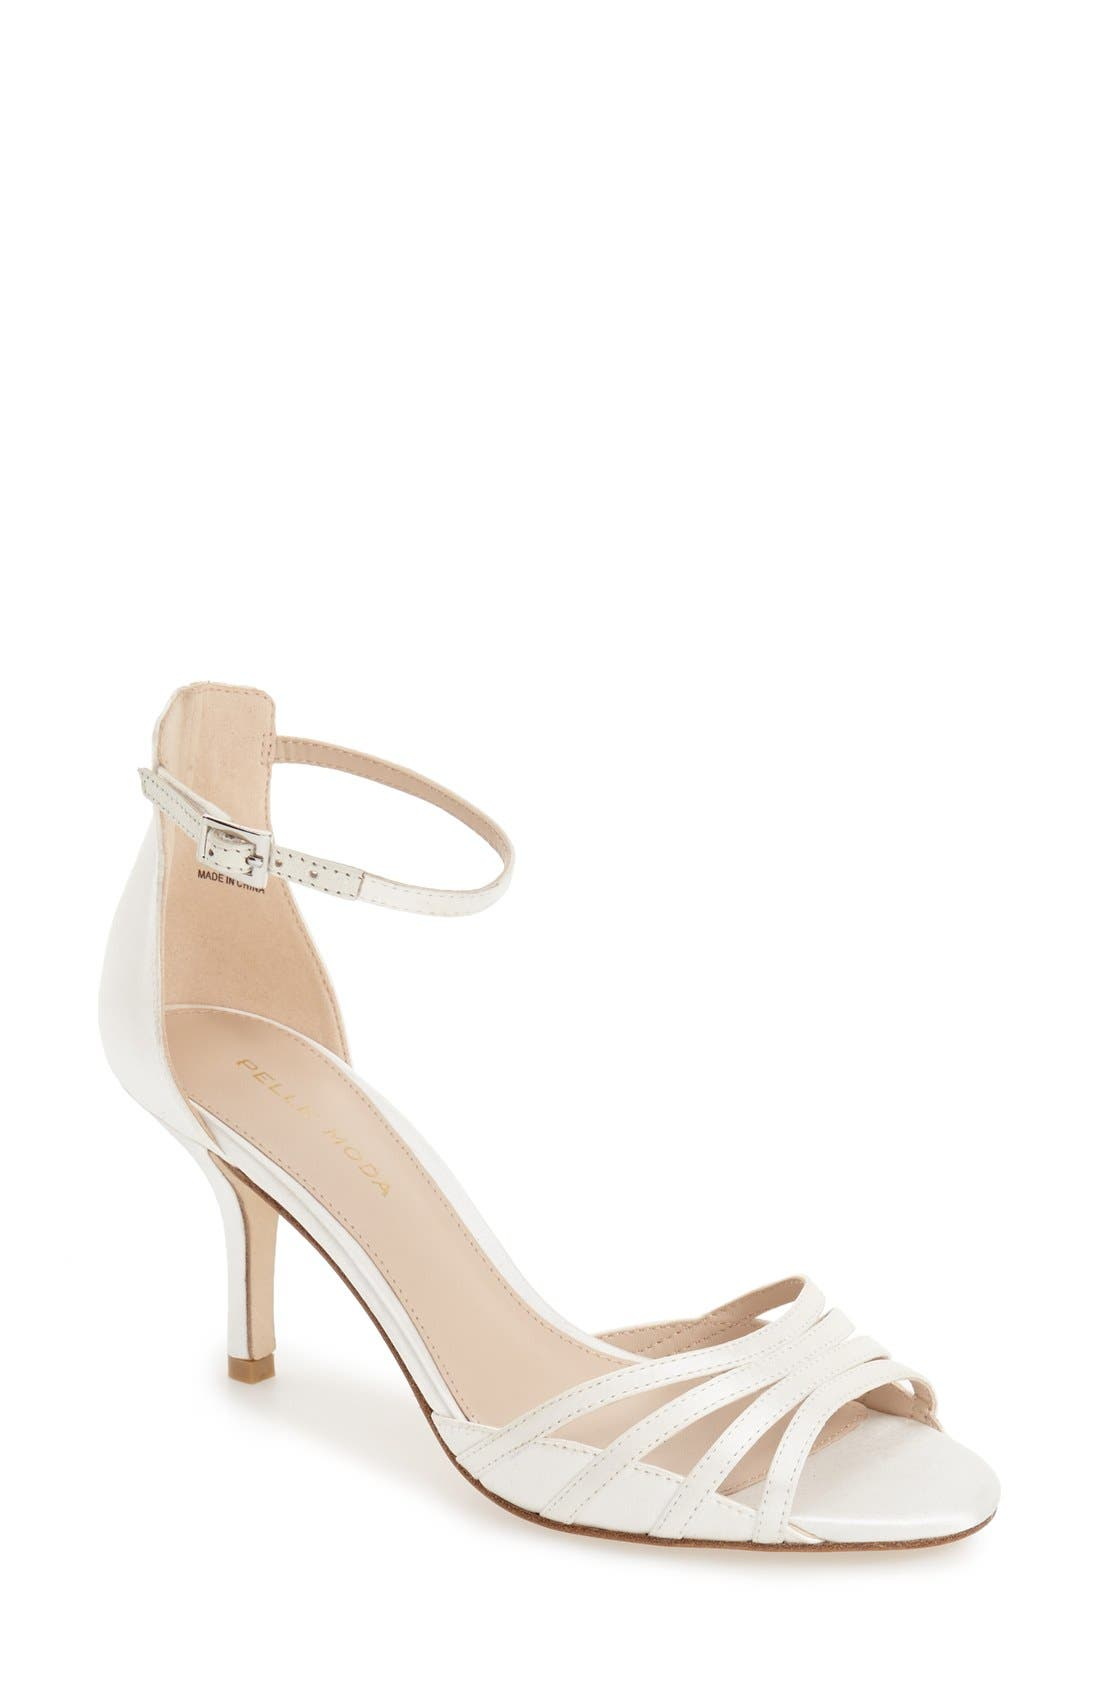 'Isabel 2' d'Orsay Sandal,                             Main thumbnail 1, color,                             White Leather